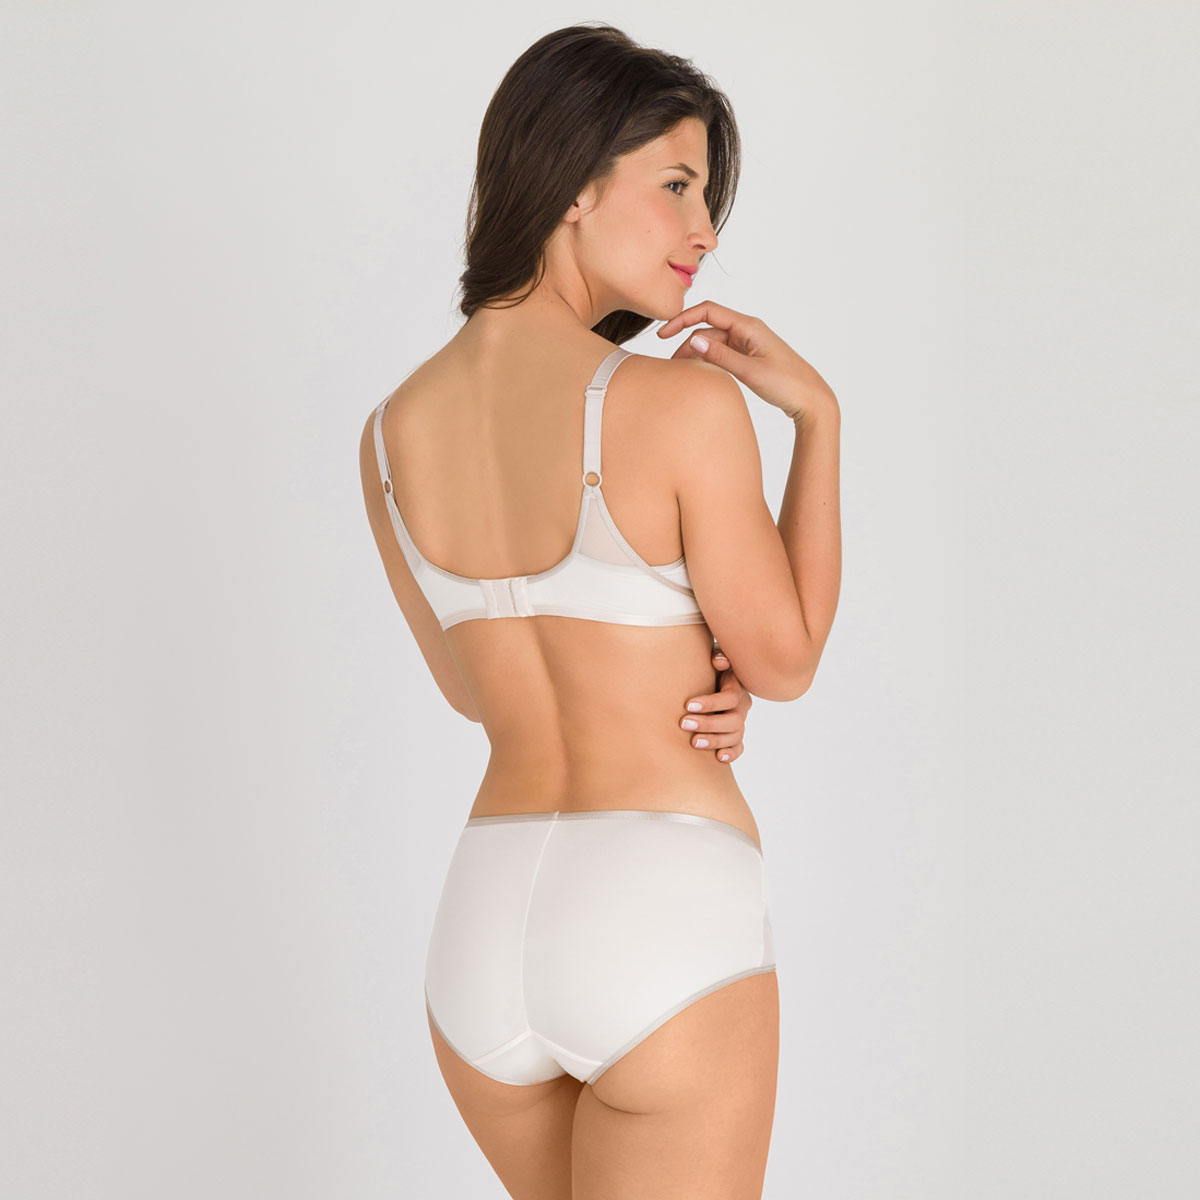 Soutien-gorge sans armatures ivoire - Ideal Beauty-PLAYTEX